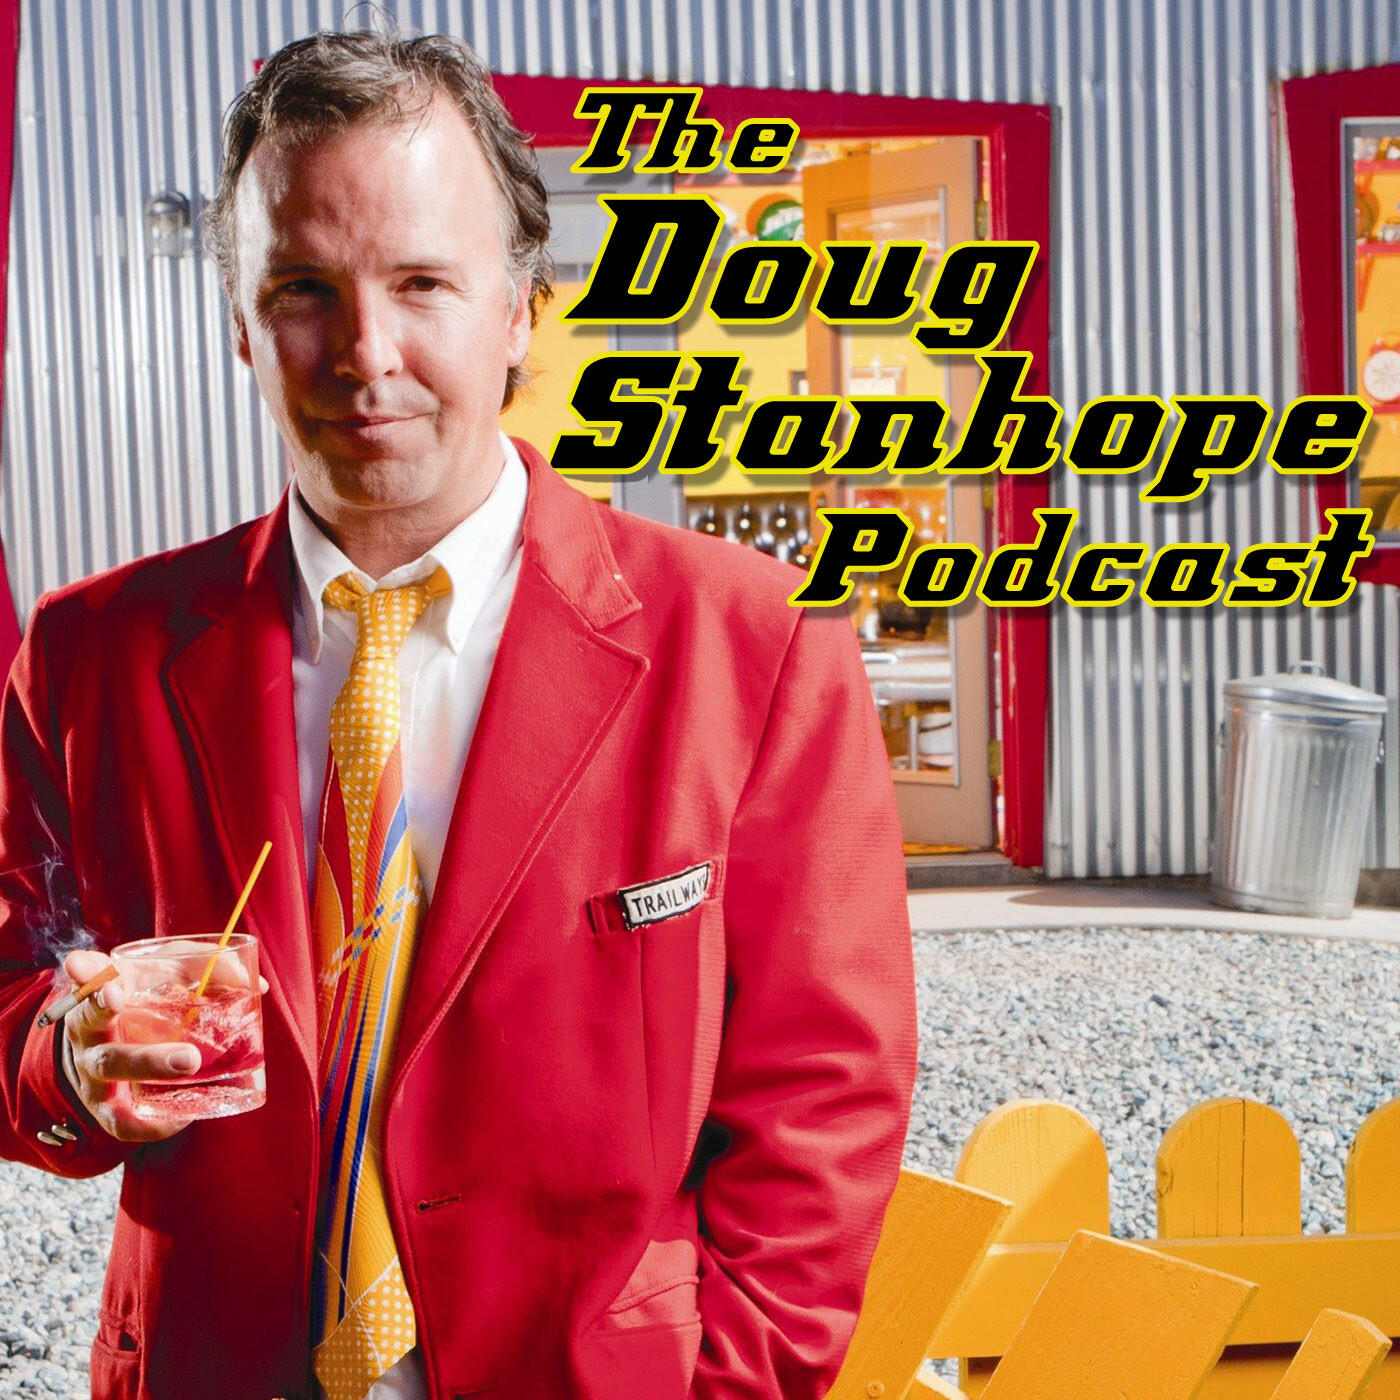 Serie Doug The Doug Stanhope Podcast Podcast